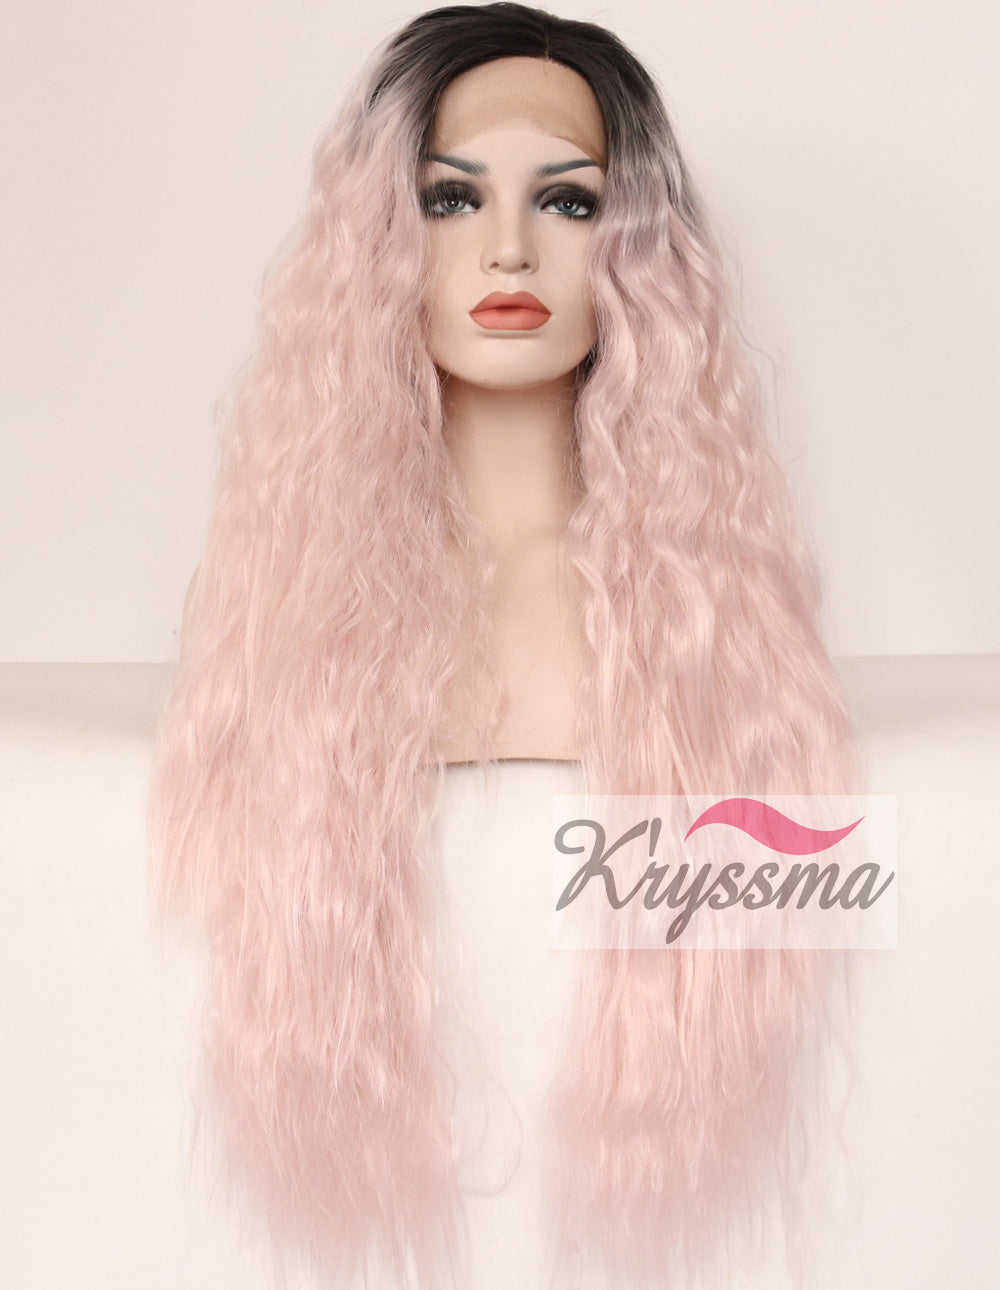 ... K ryssma Ombre Baby Pink Lace Front Wigs for Women Dark Black Roots to  Light ... 1204b72eeb